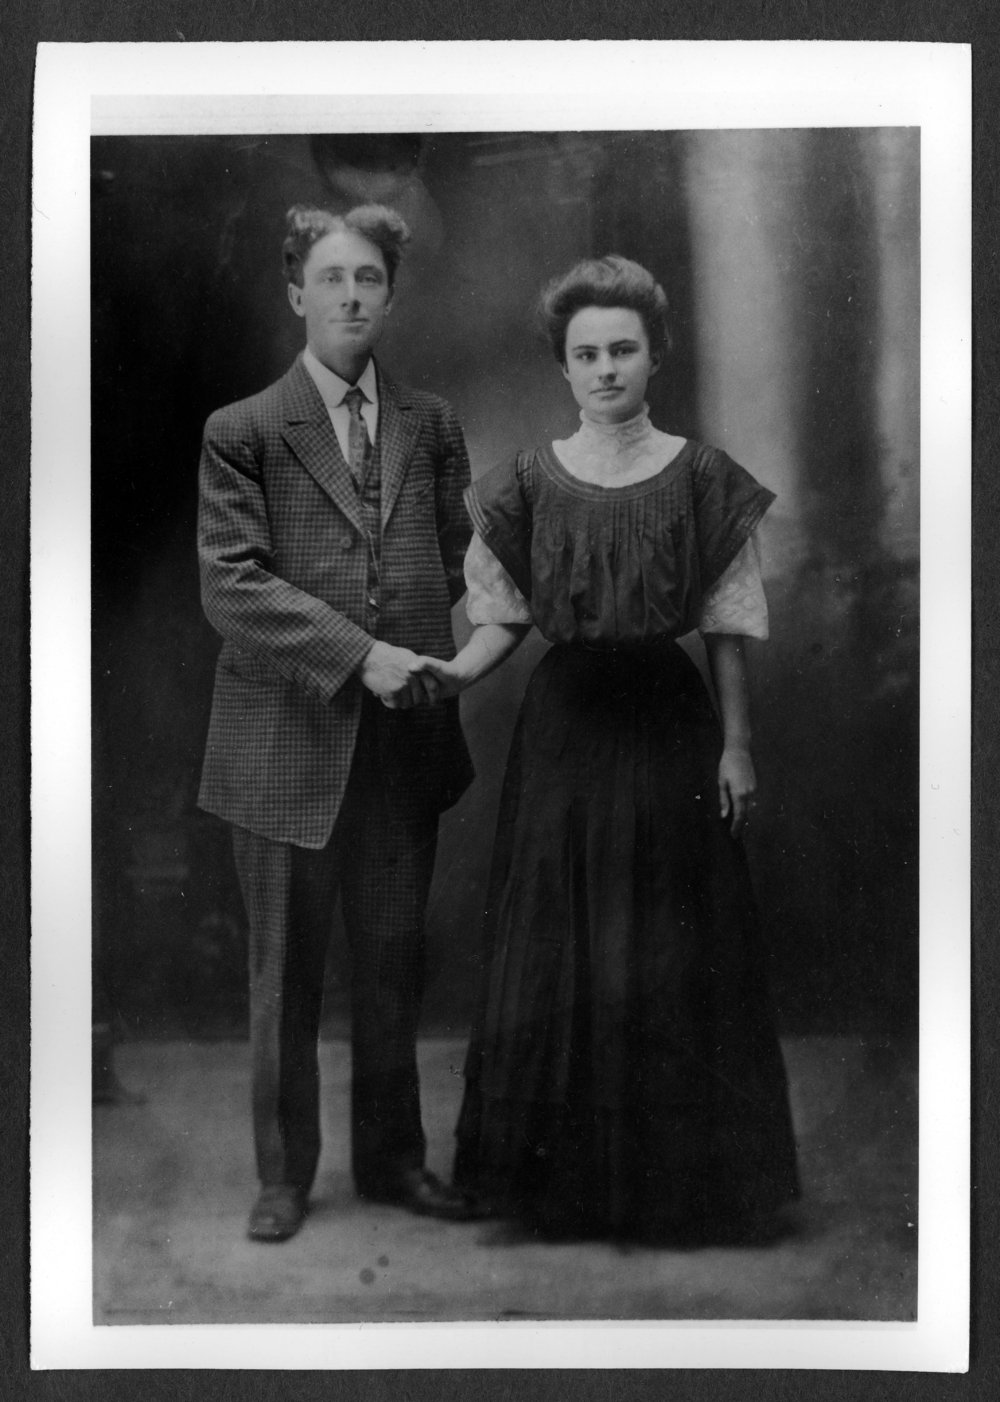 Scenes of Sherman County, Kansas - Wedding picture of William and Mary Melstrom.